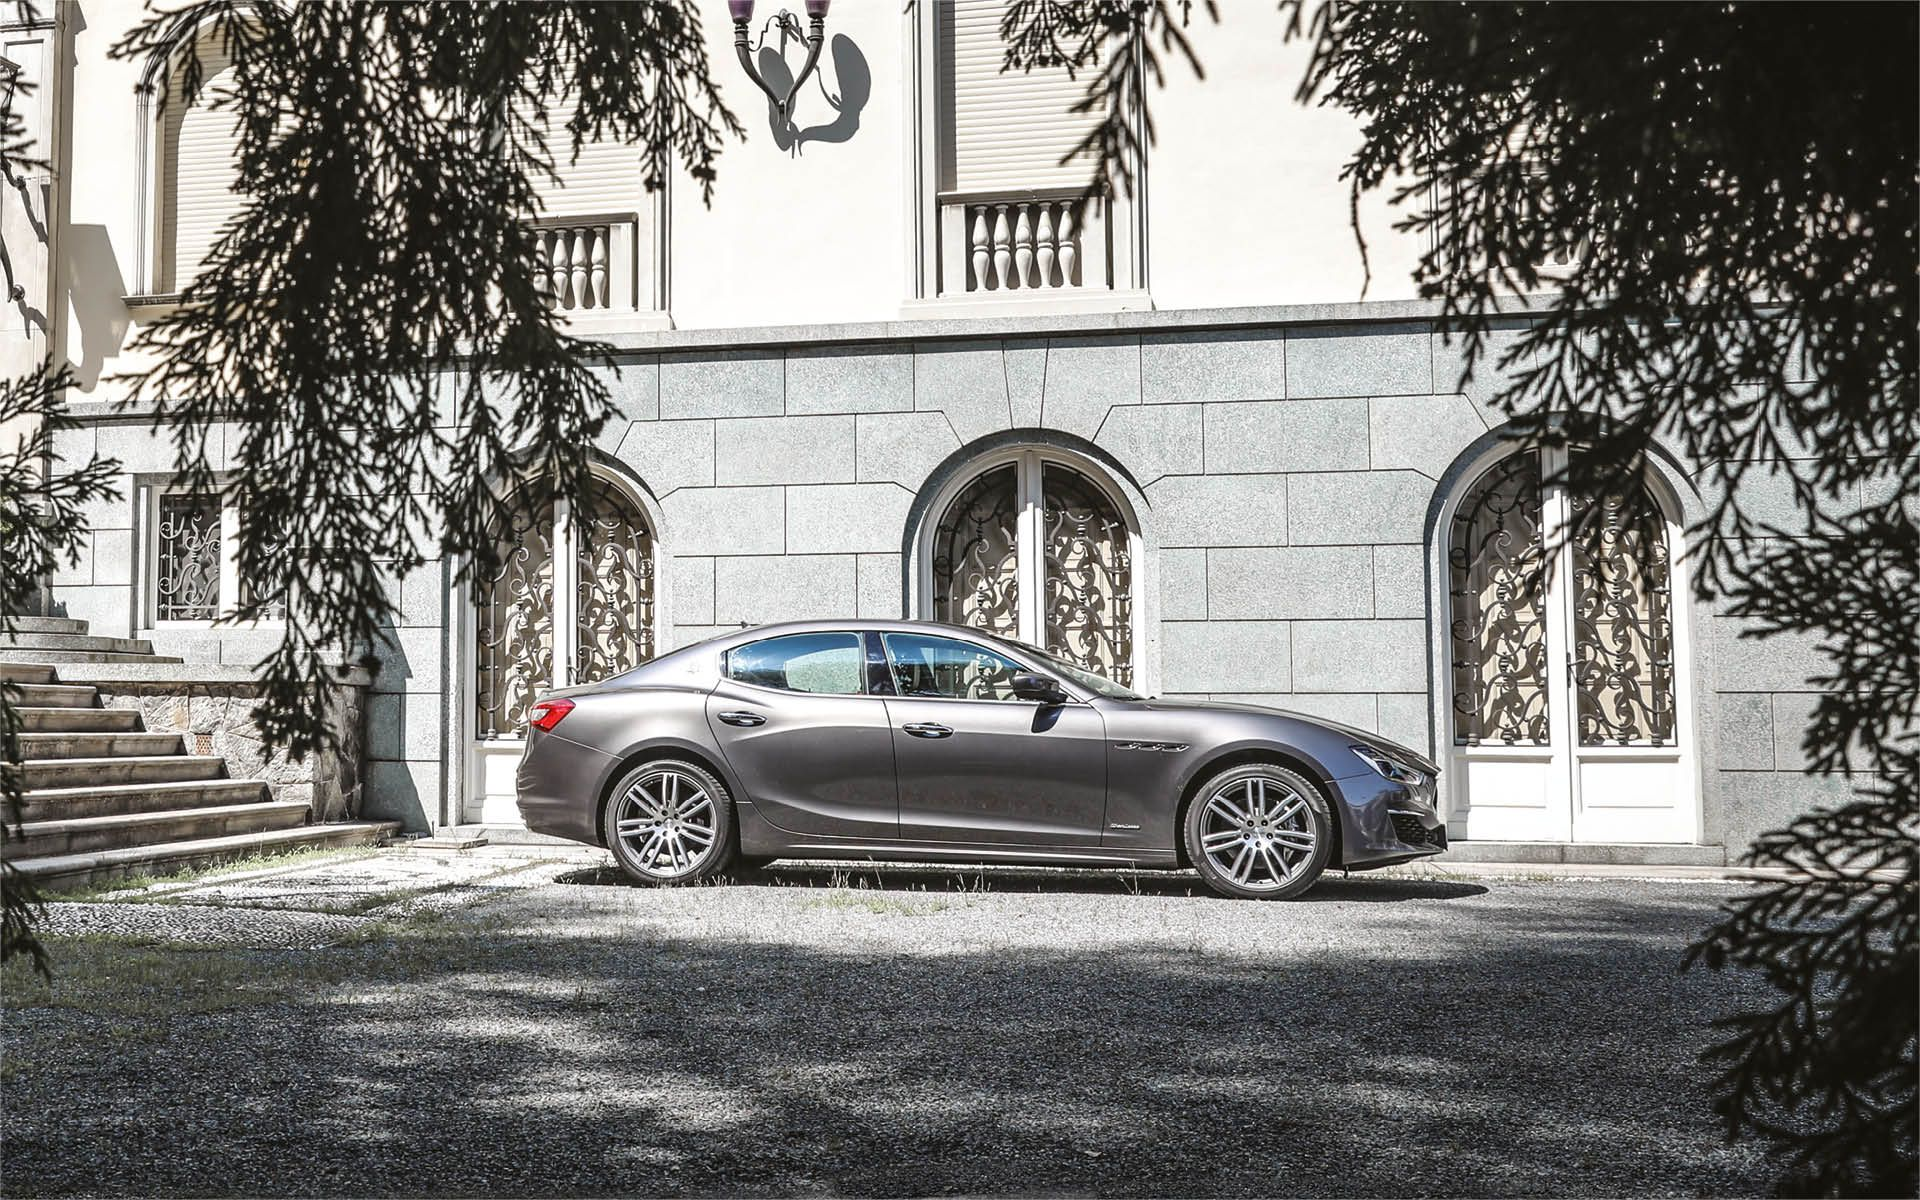 On the Road With Maserati: 7 Ways To Live La Dolce Vita In Modena